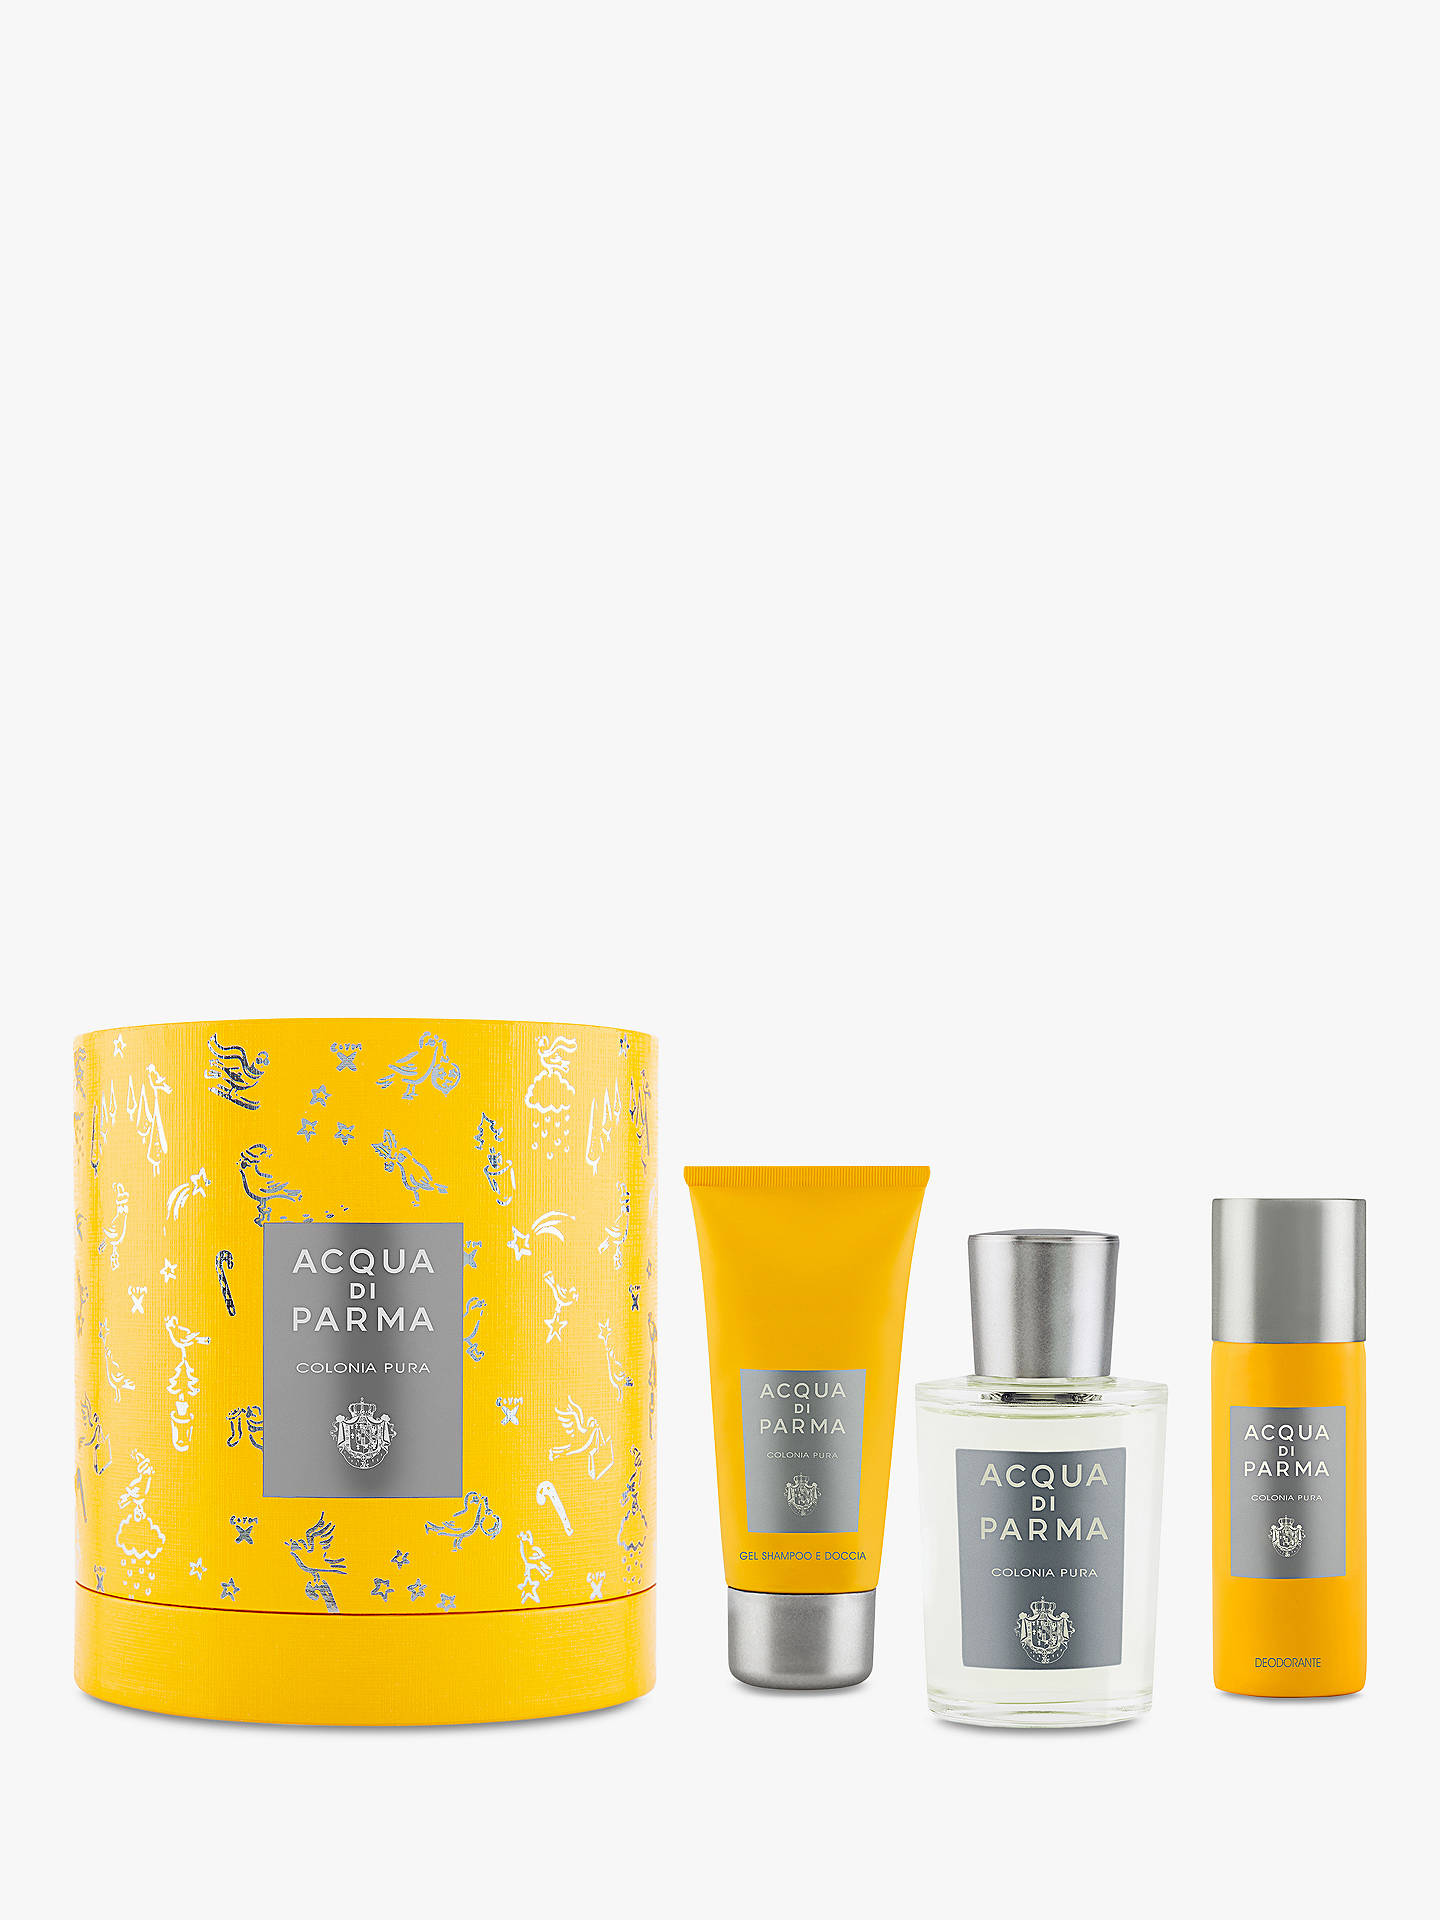 Buy Acqua di Parma Colonia Pura 100ml Eau de Cologne Fragrance Gift Set Online at johnlewis.com